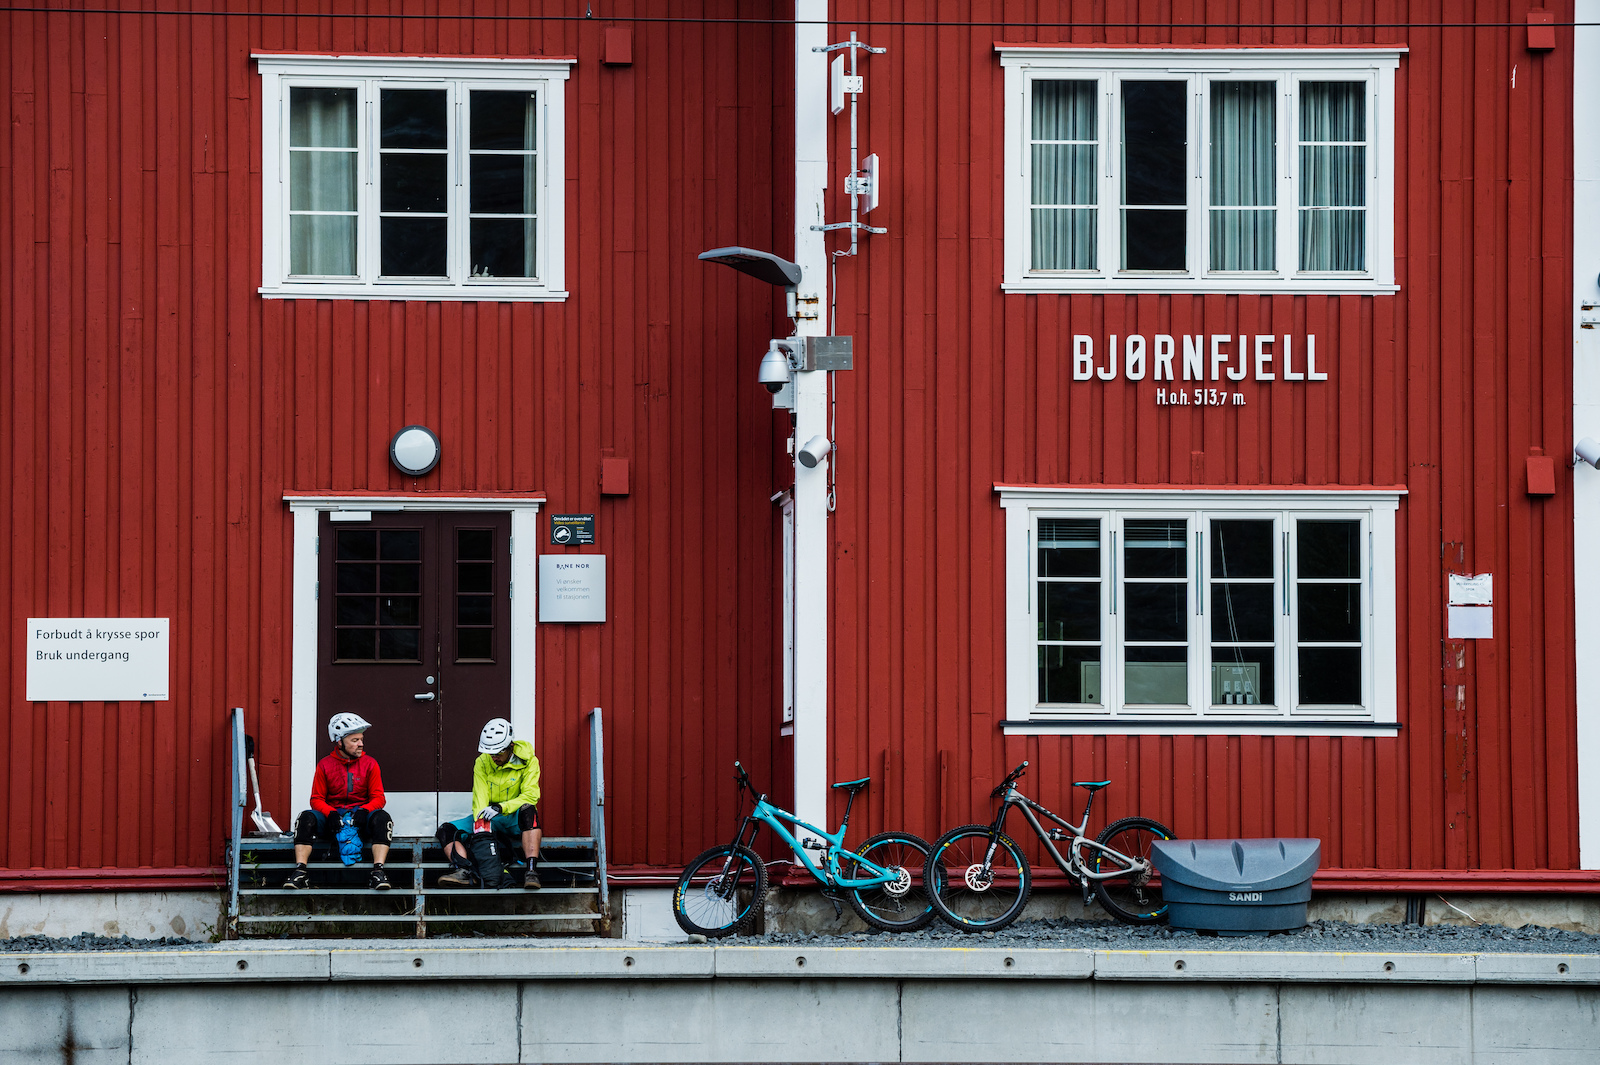 Mikael af Ekenstam and Joey Schulser hanging out at the train station in Bj rnefjell 513 meter Norway.